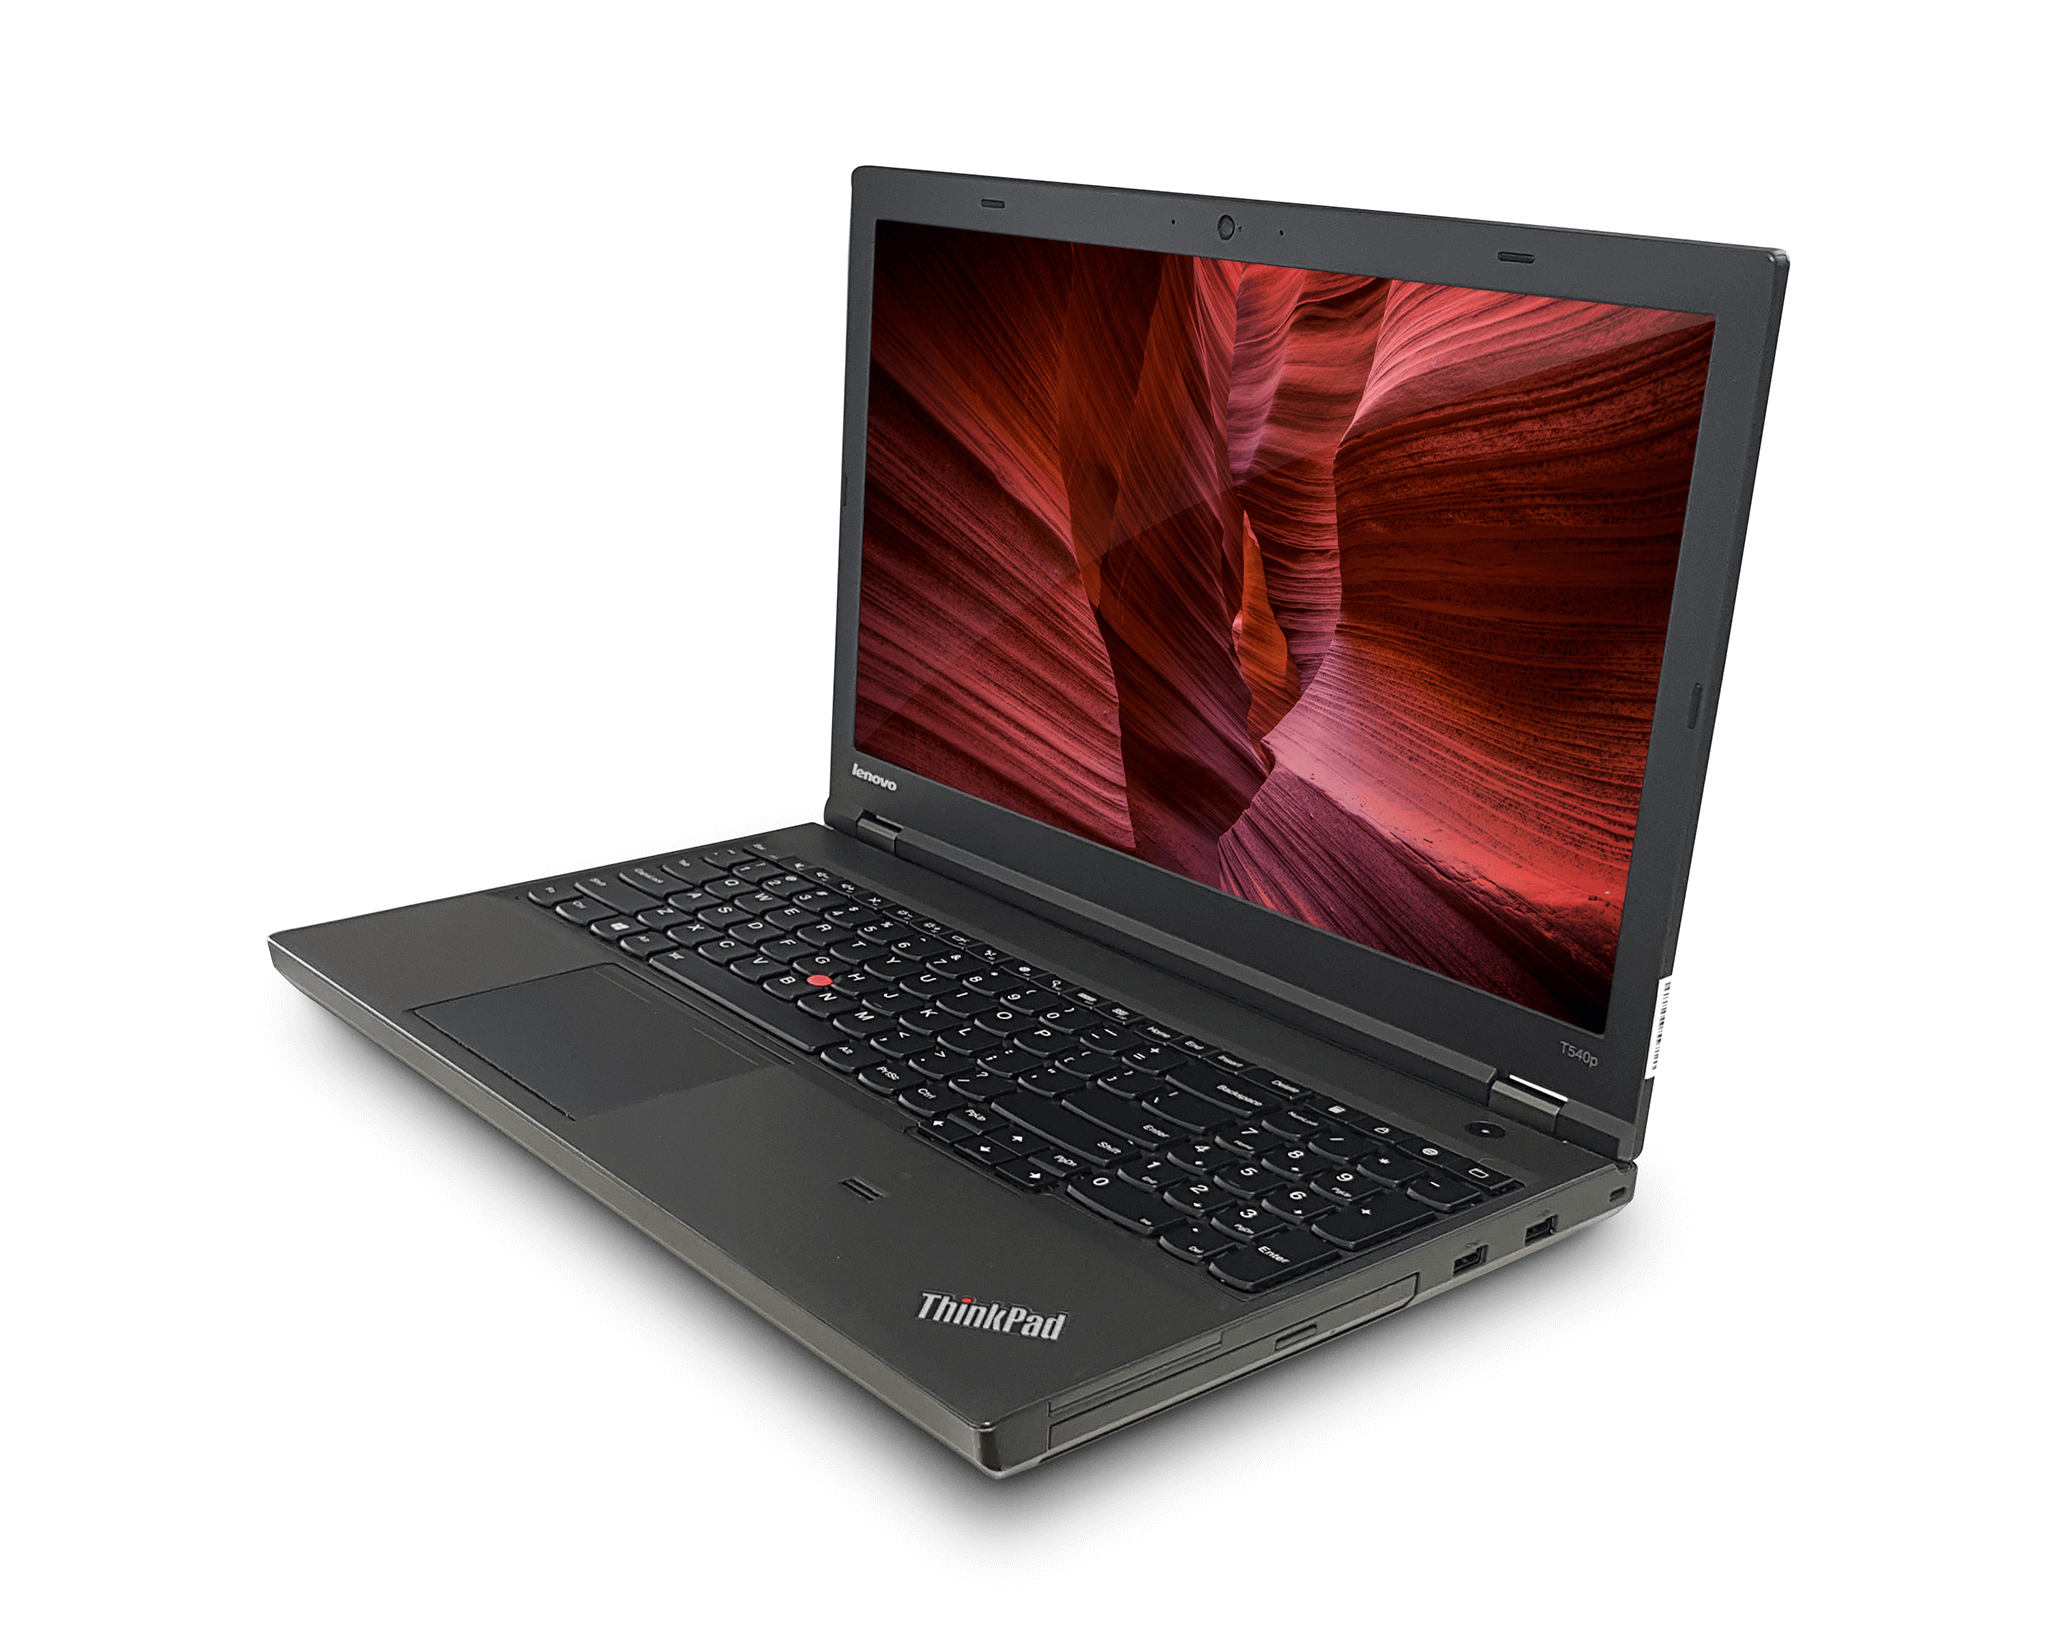 LENOVO THINKPAD T540P I5-4300M 2,6 / 4096 MB DDR3L / 500 GB + 16 GB SSD M.2 / DVD-RW / WINDOWS 10 PRO REF / 15,6